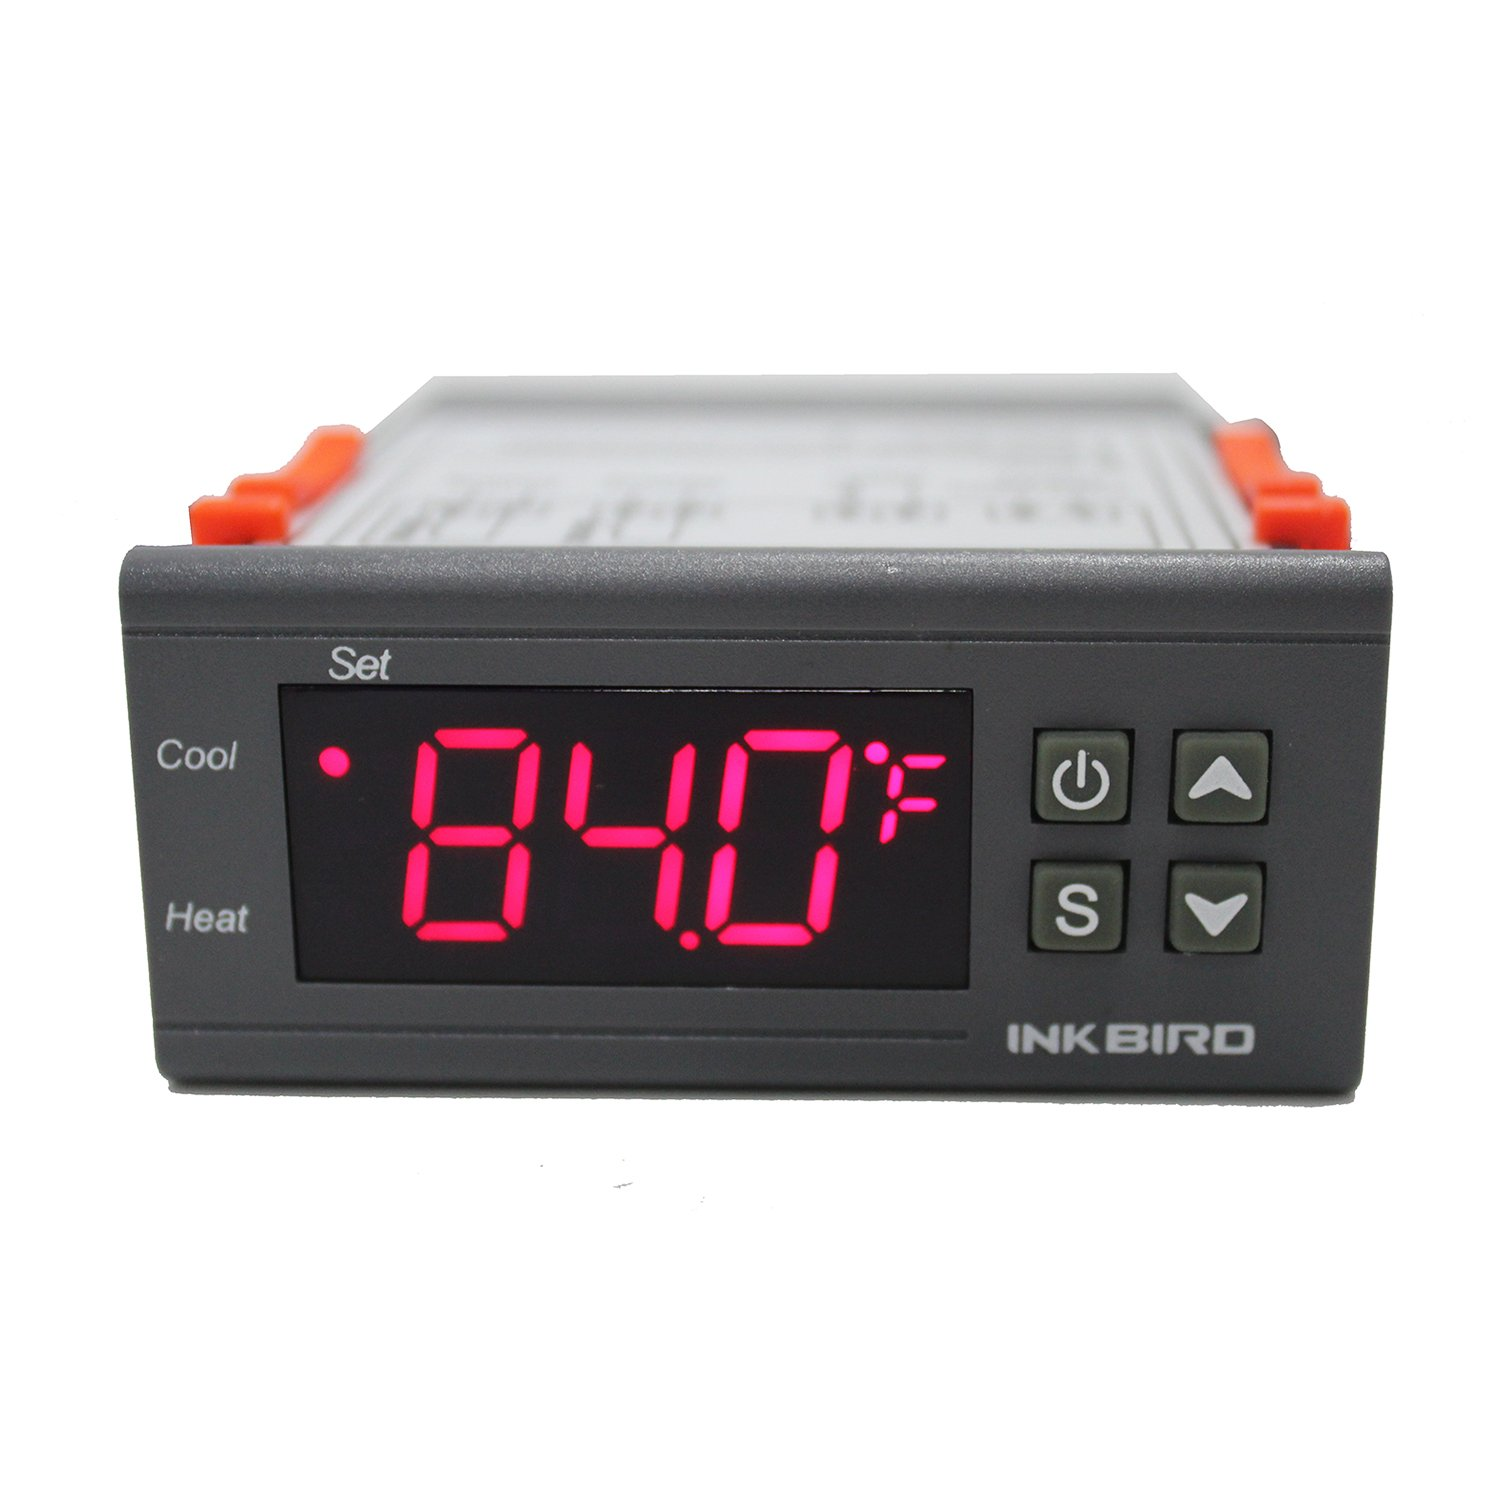 Inkbird ITC-1000F 2 Stage Temperature Controller Cooling and Heating Modes Celsius and Fahrenheit: Industrial & Scientific